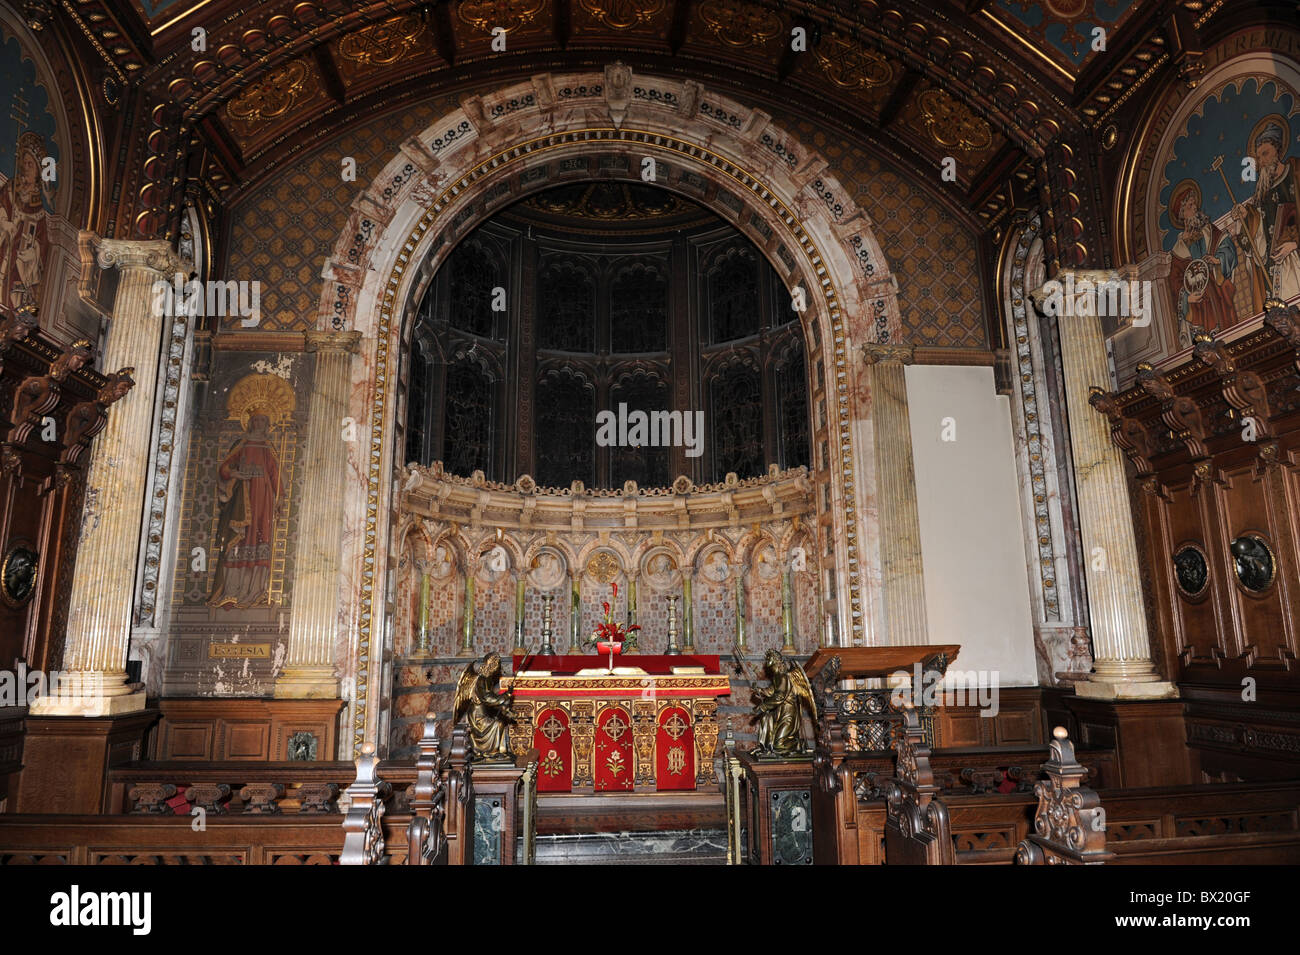 The chapel at at Crewe Hall in Cheshire - Stock Image